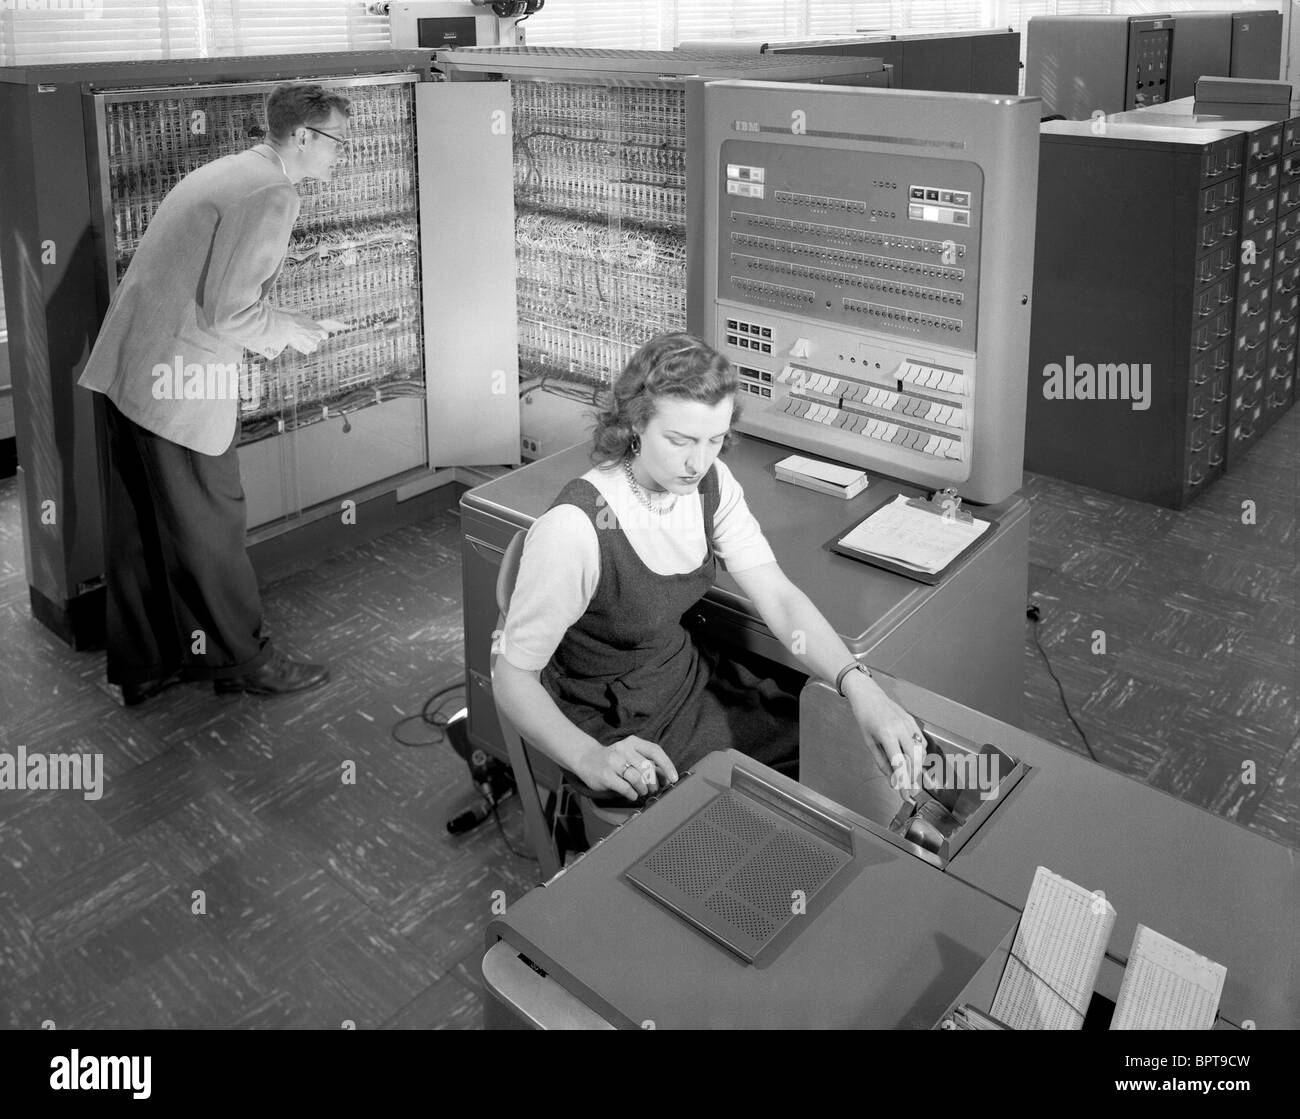 IBM Electronic Data Processing Machine introduced in 1954 - Stock Image